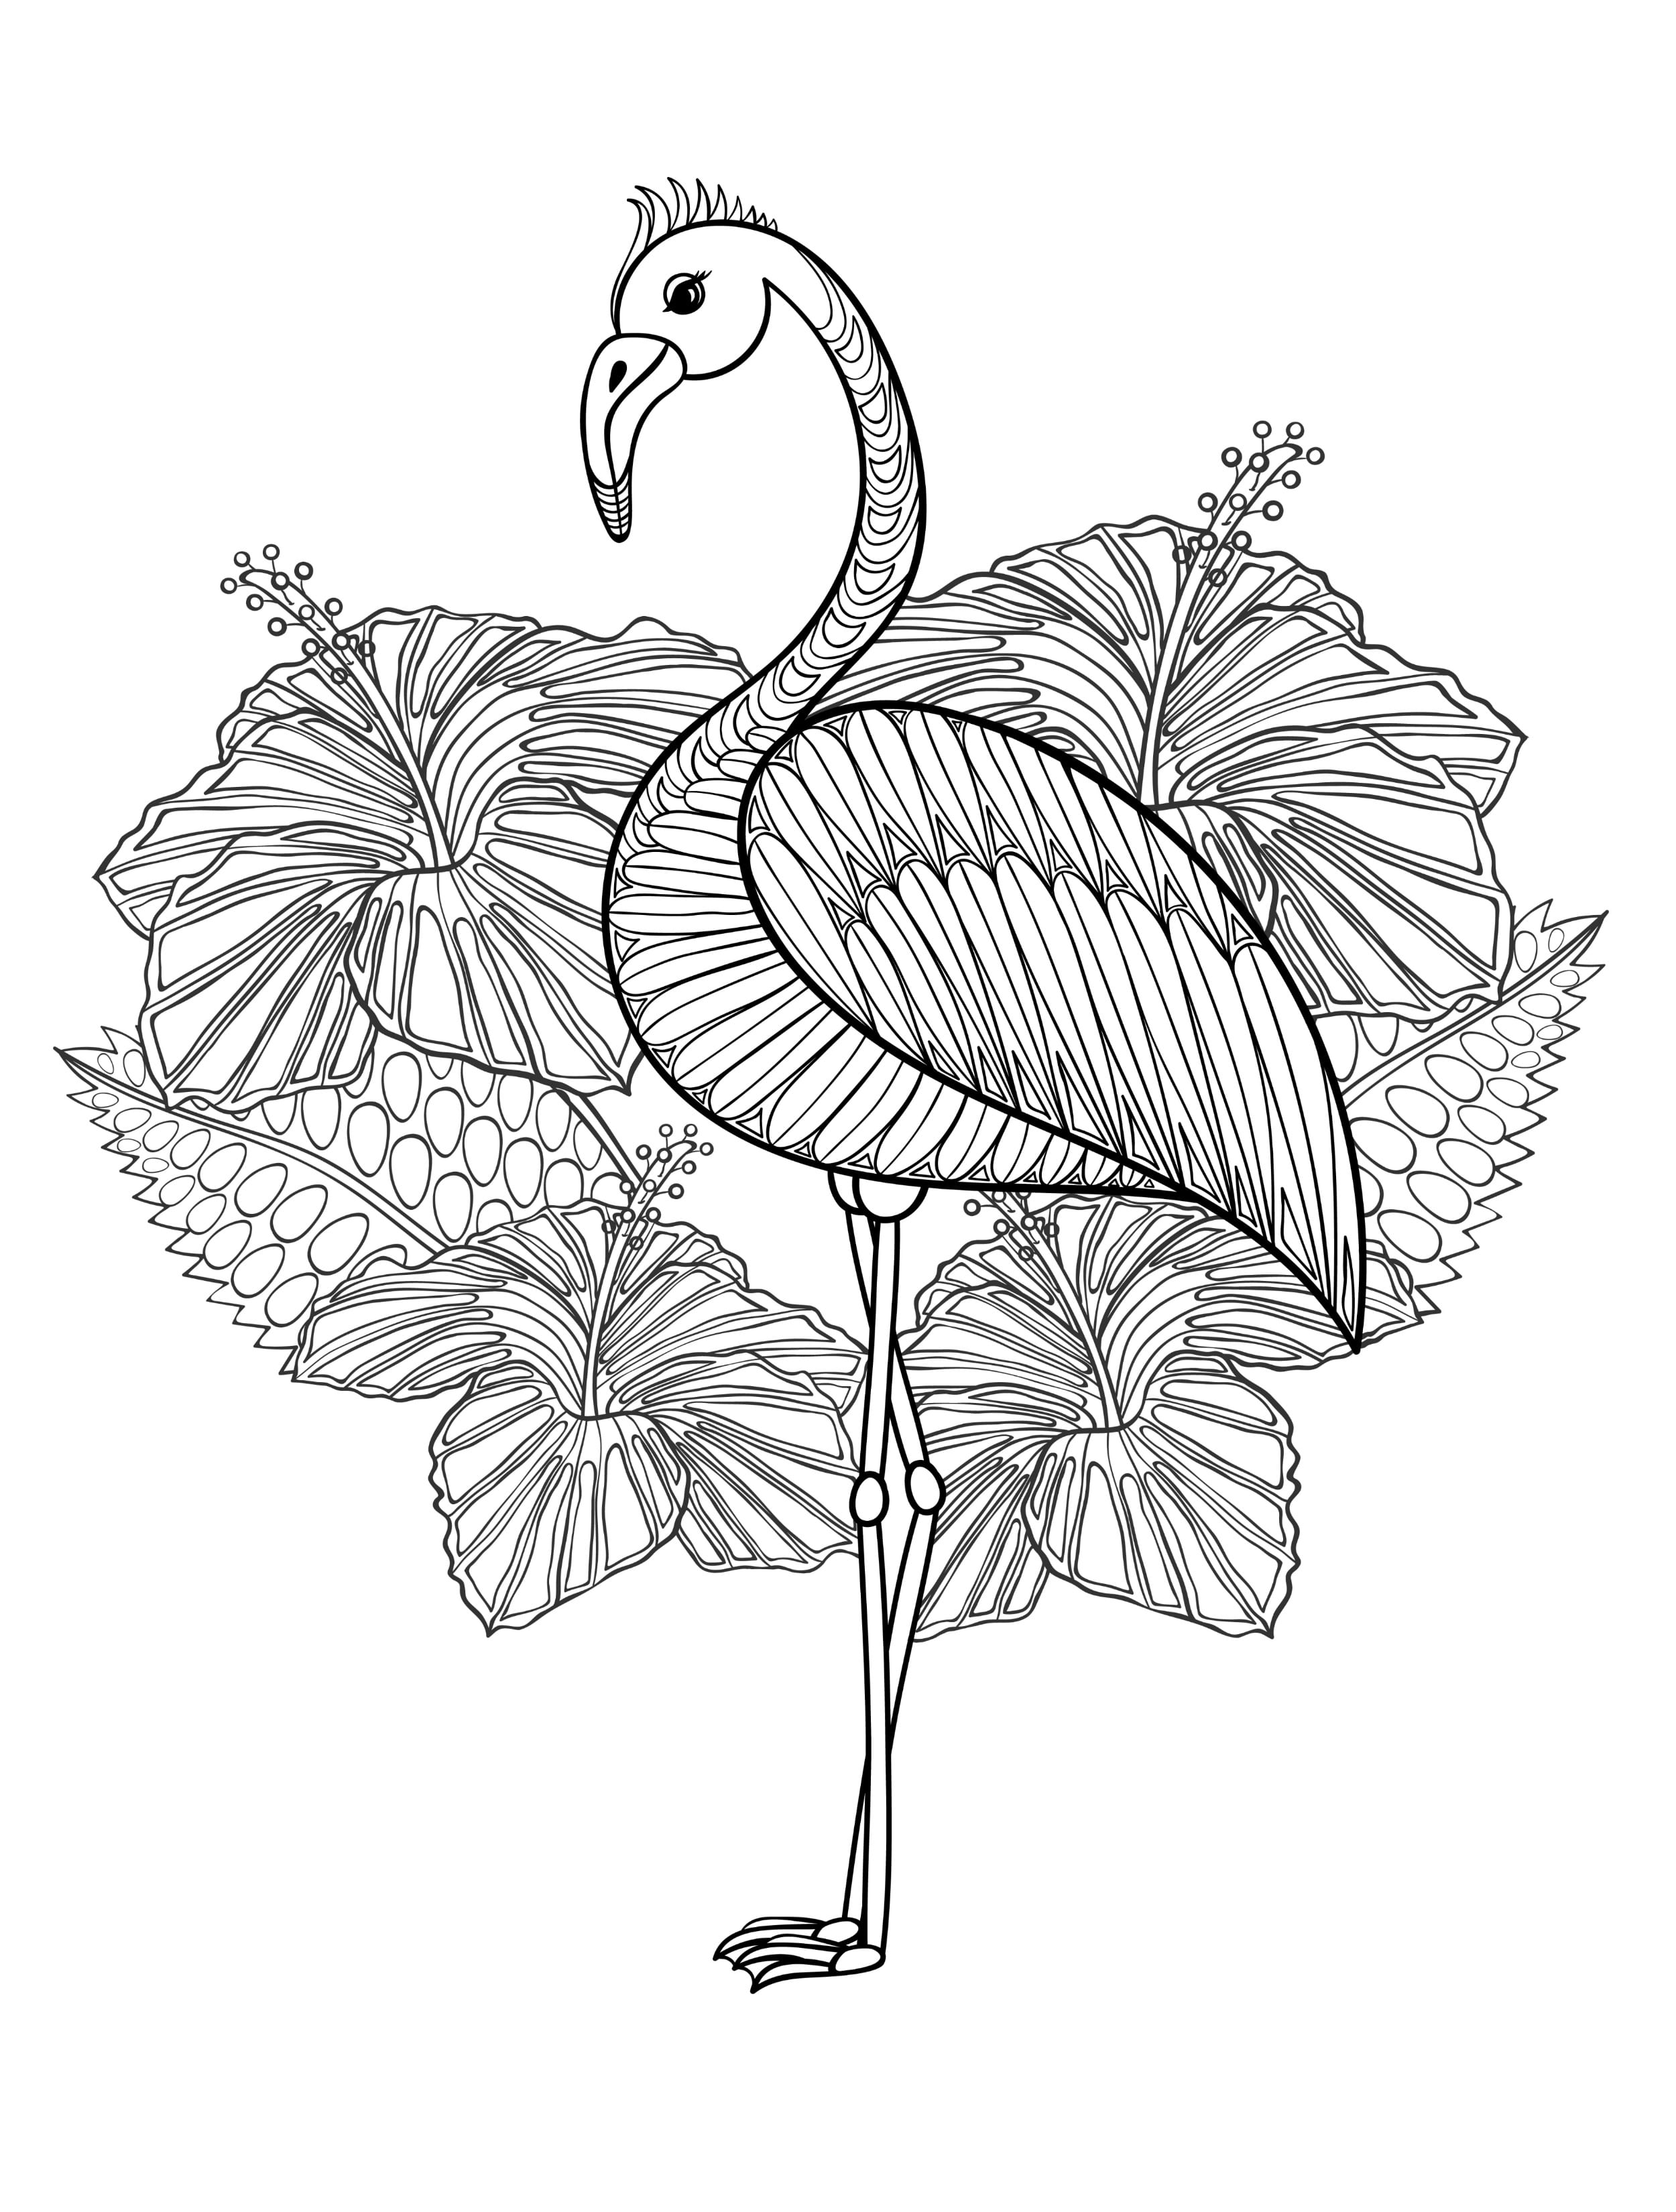 Flamingo Coloring Pages With Wallpapers Wide Mayapurjacouture Com